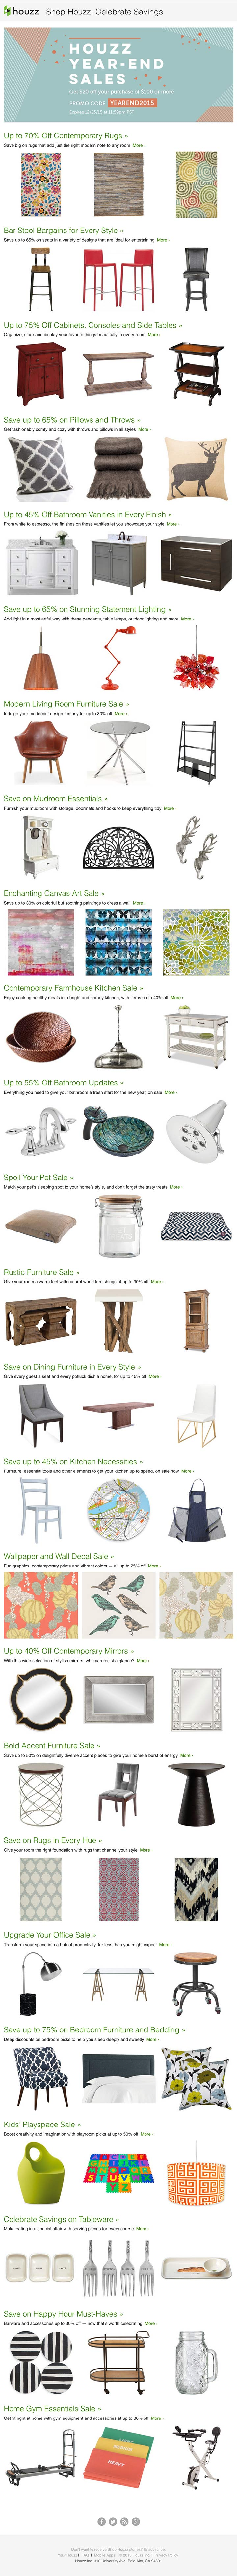 Email design for New Years savings on home supplies